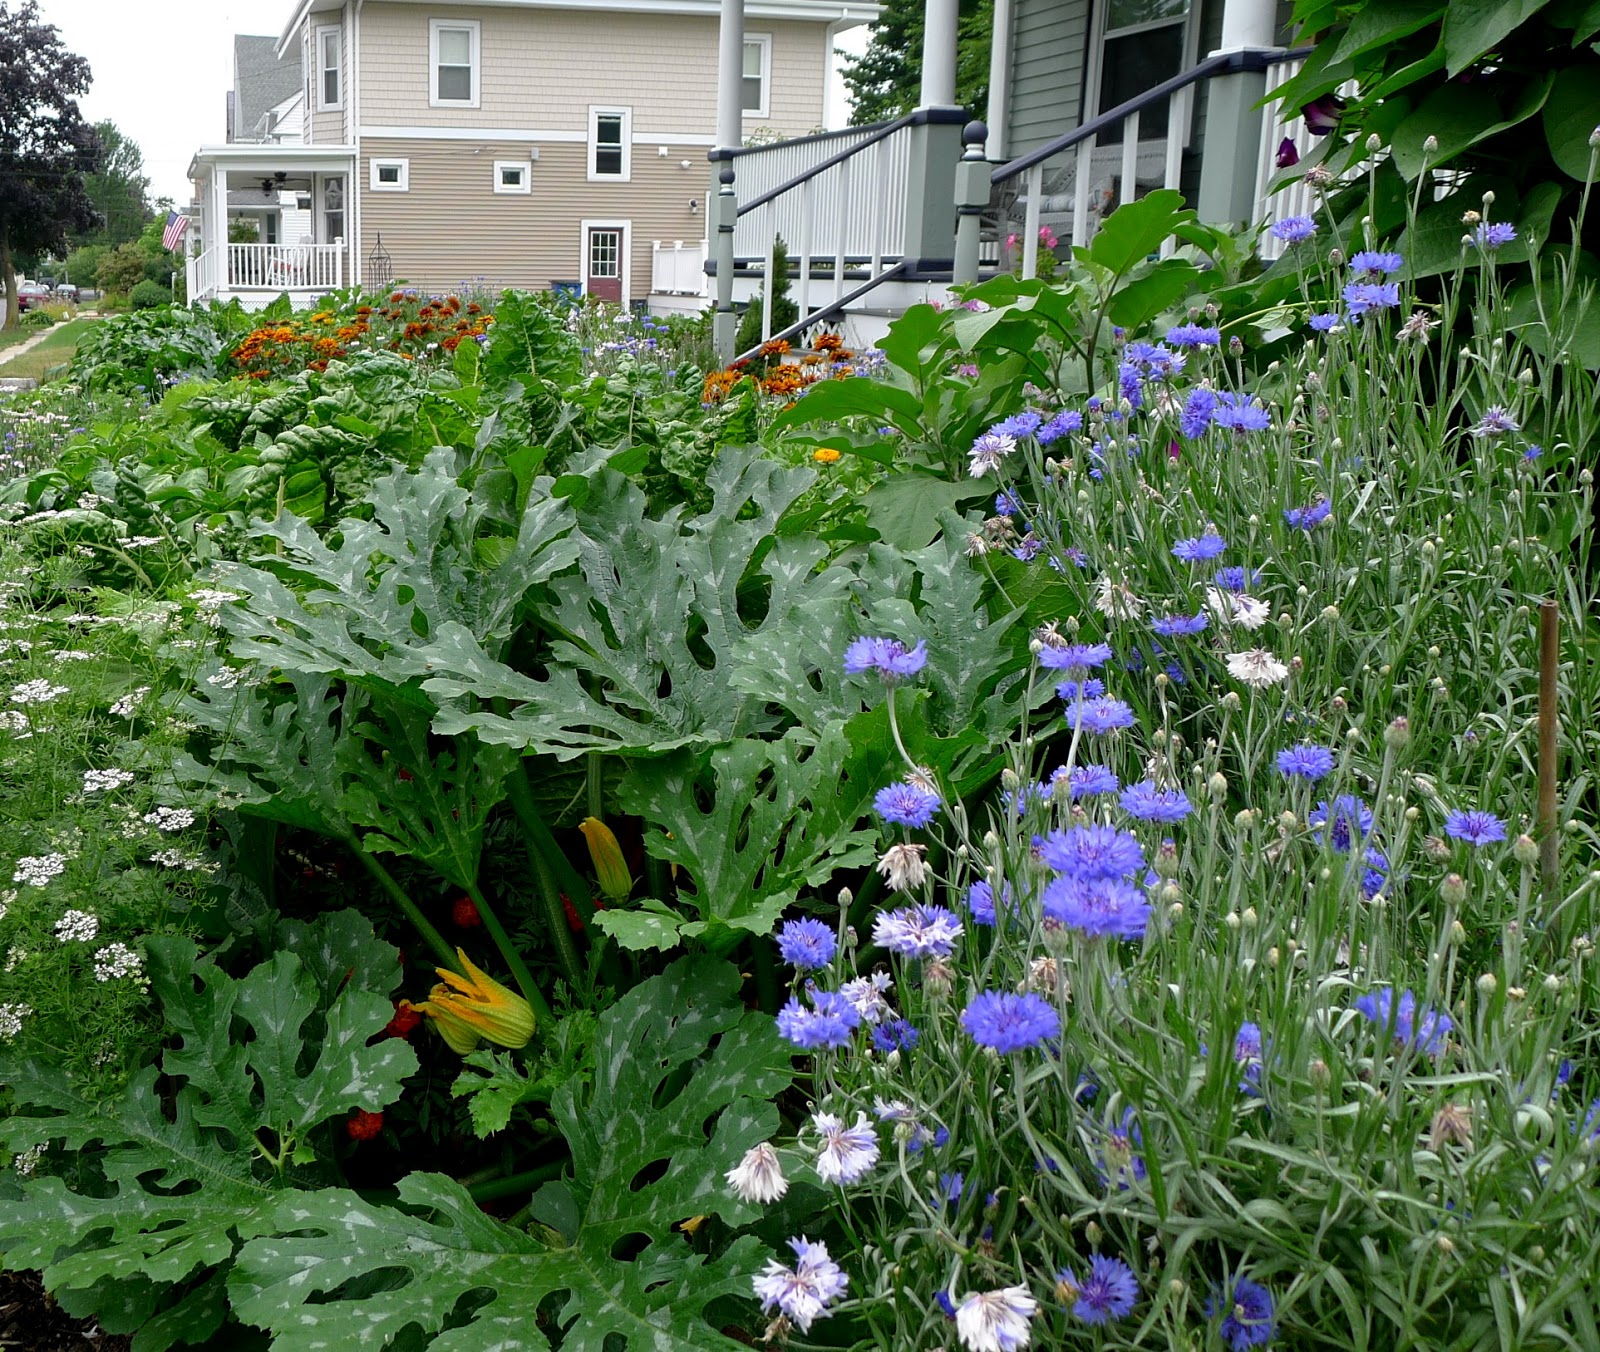 Less Noise, More Green: Edible Landscaping: Replacing